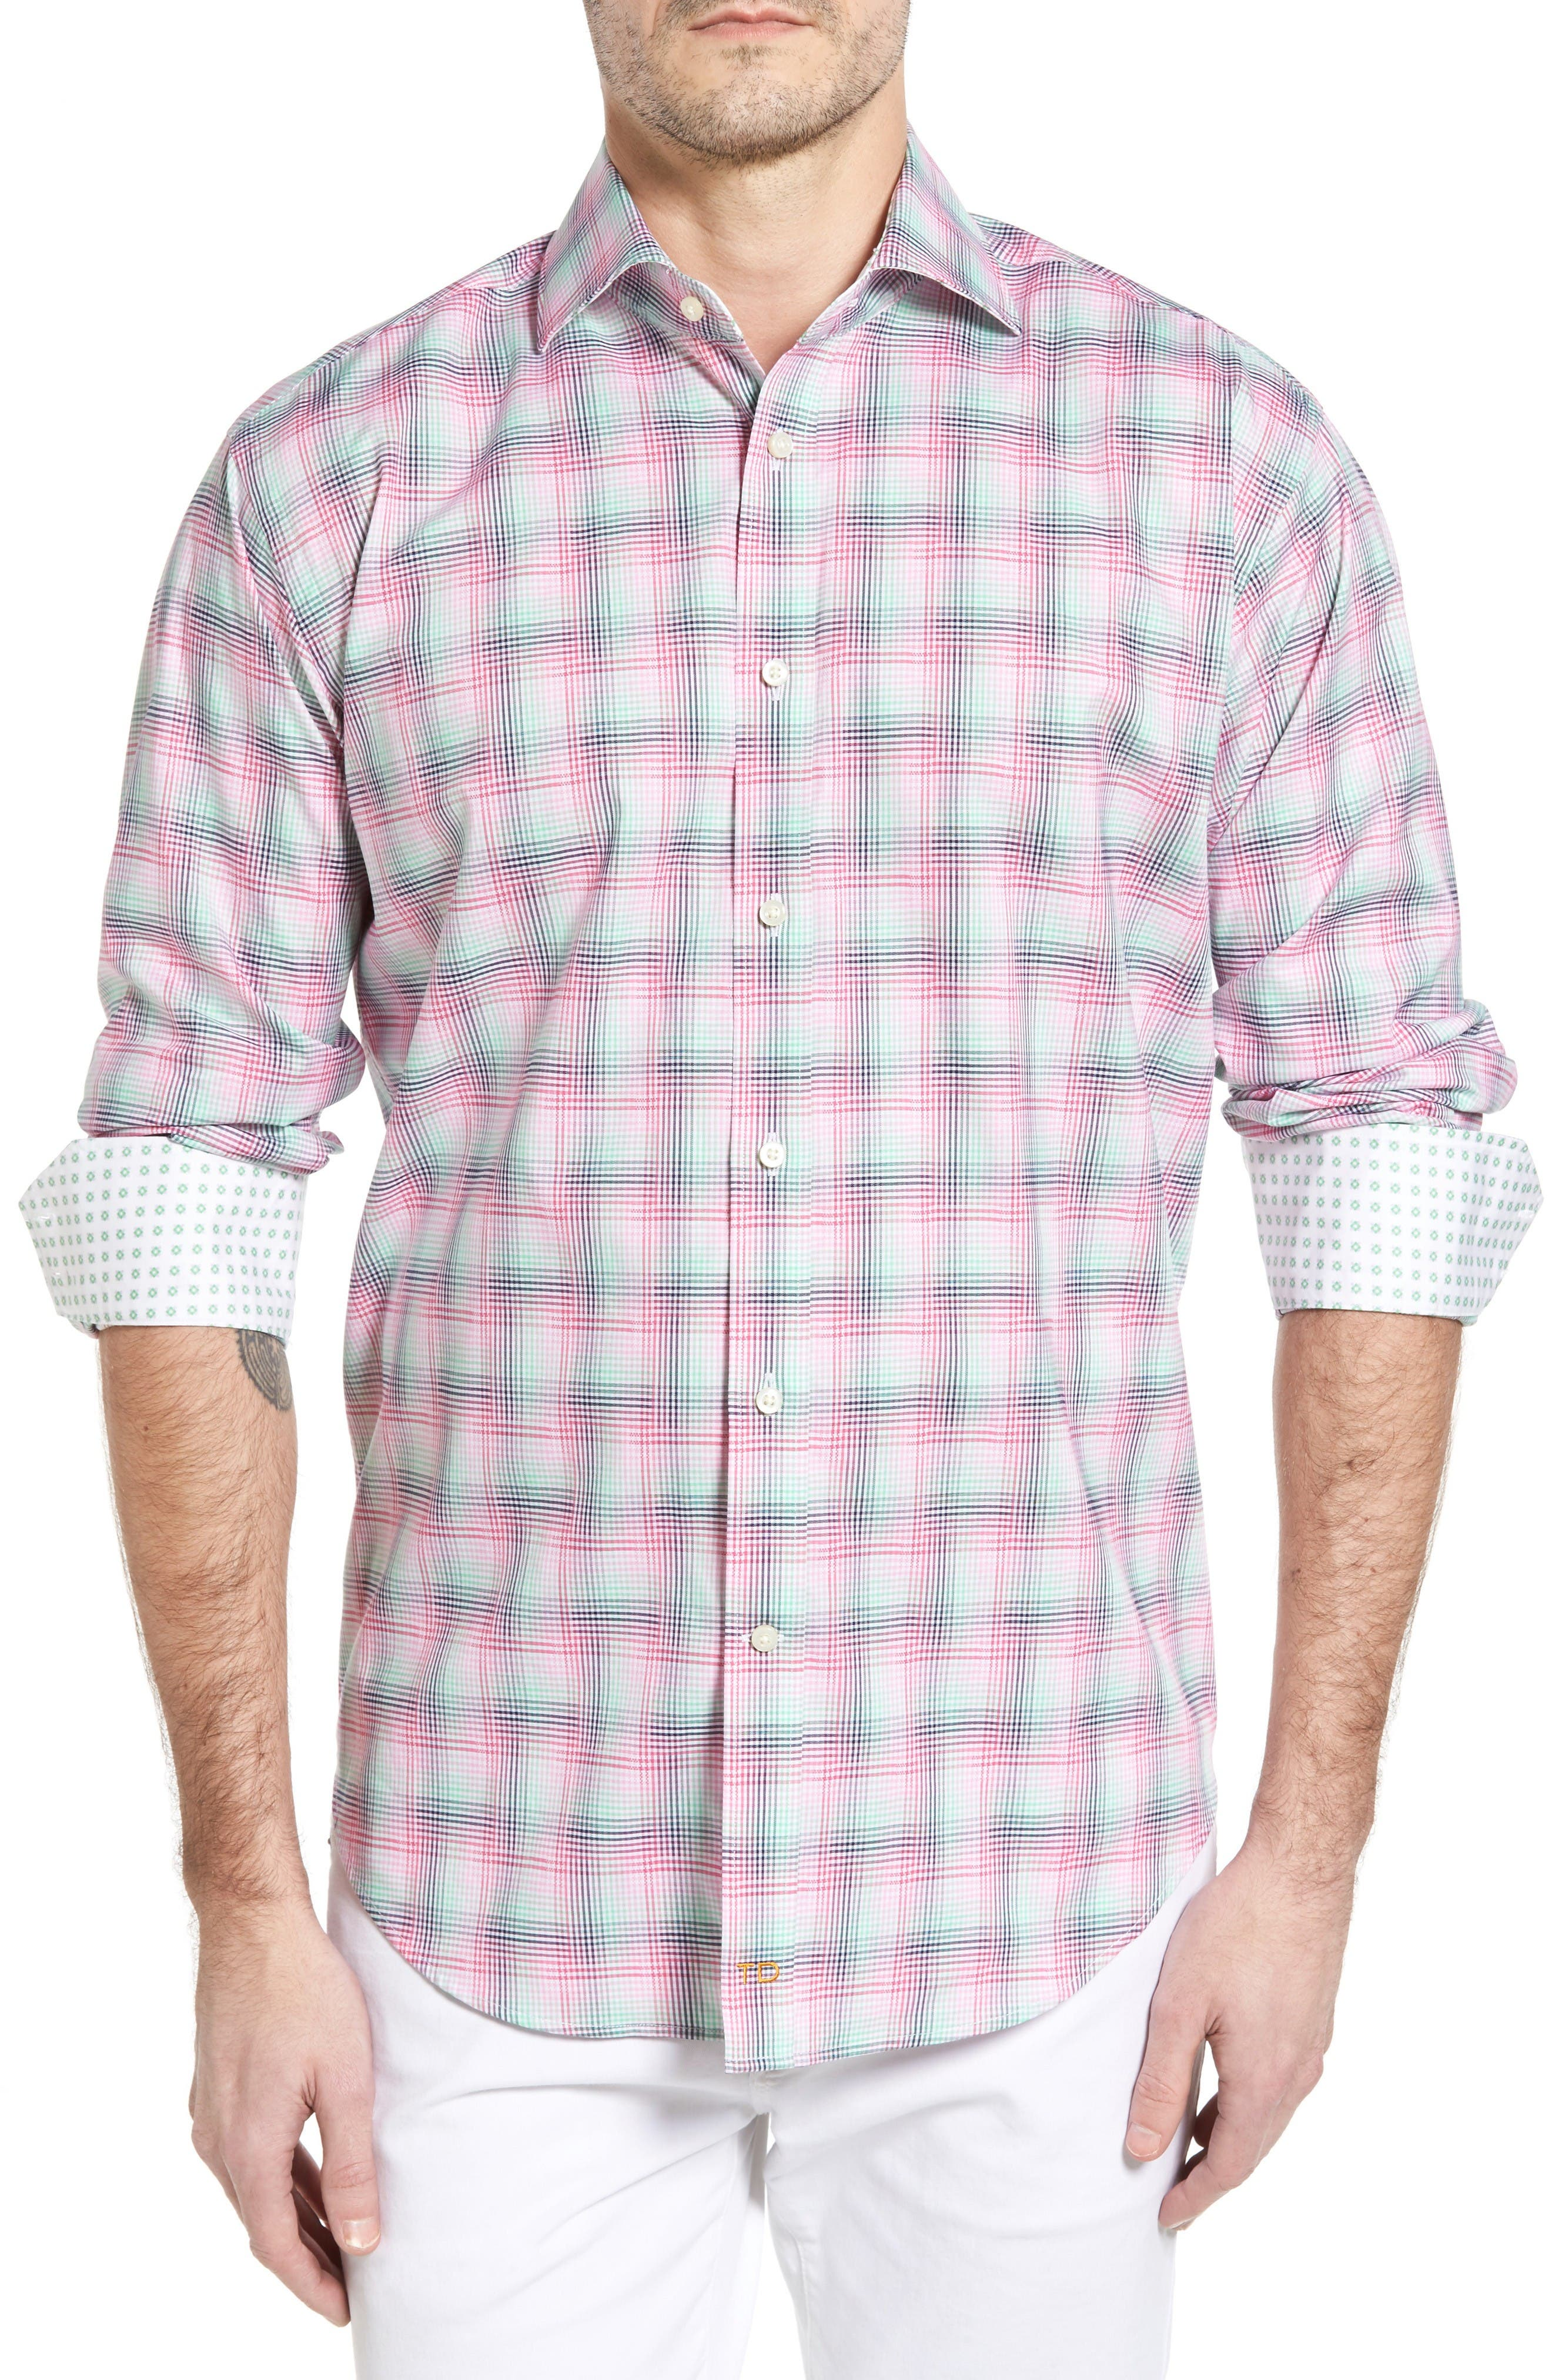 Alternate Image 1 Selected - Thomas Dean Classic Fit Funky Plaid Sport Shirt (Regular)